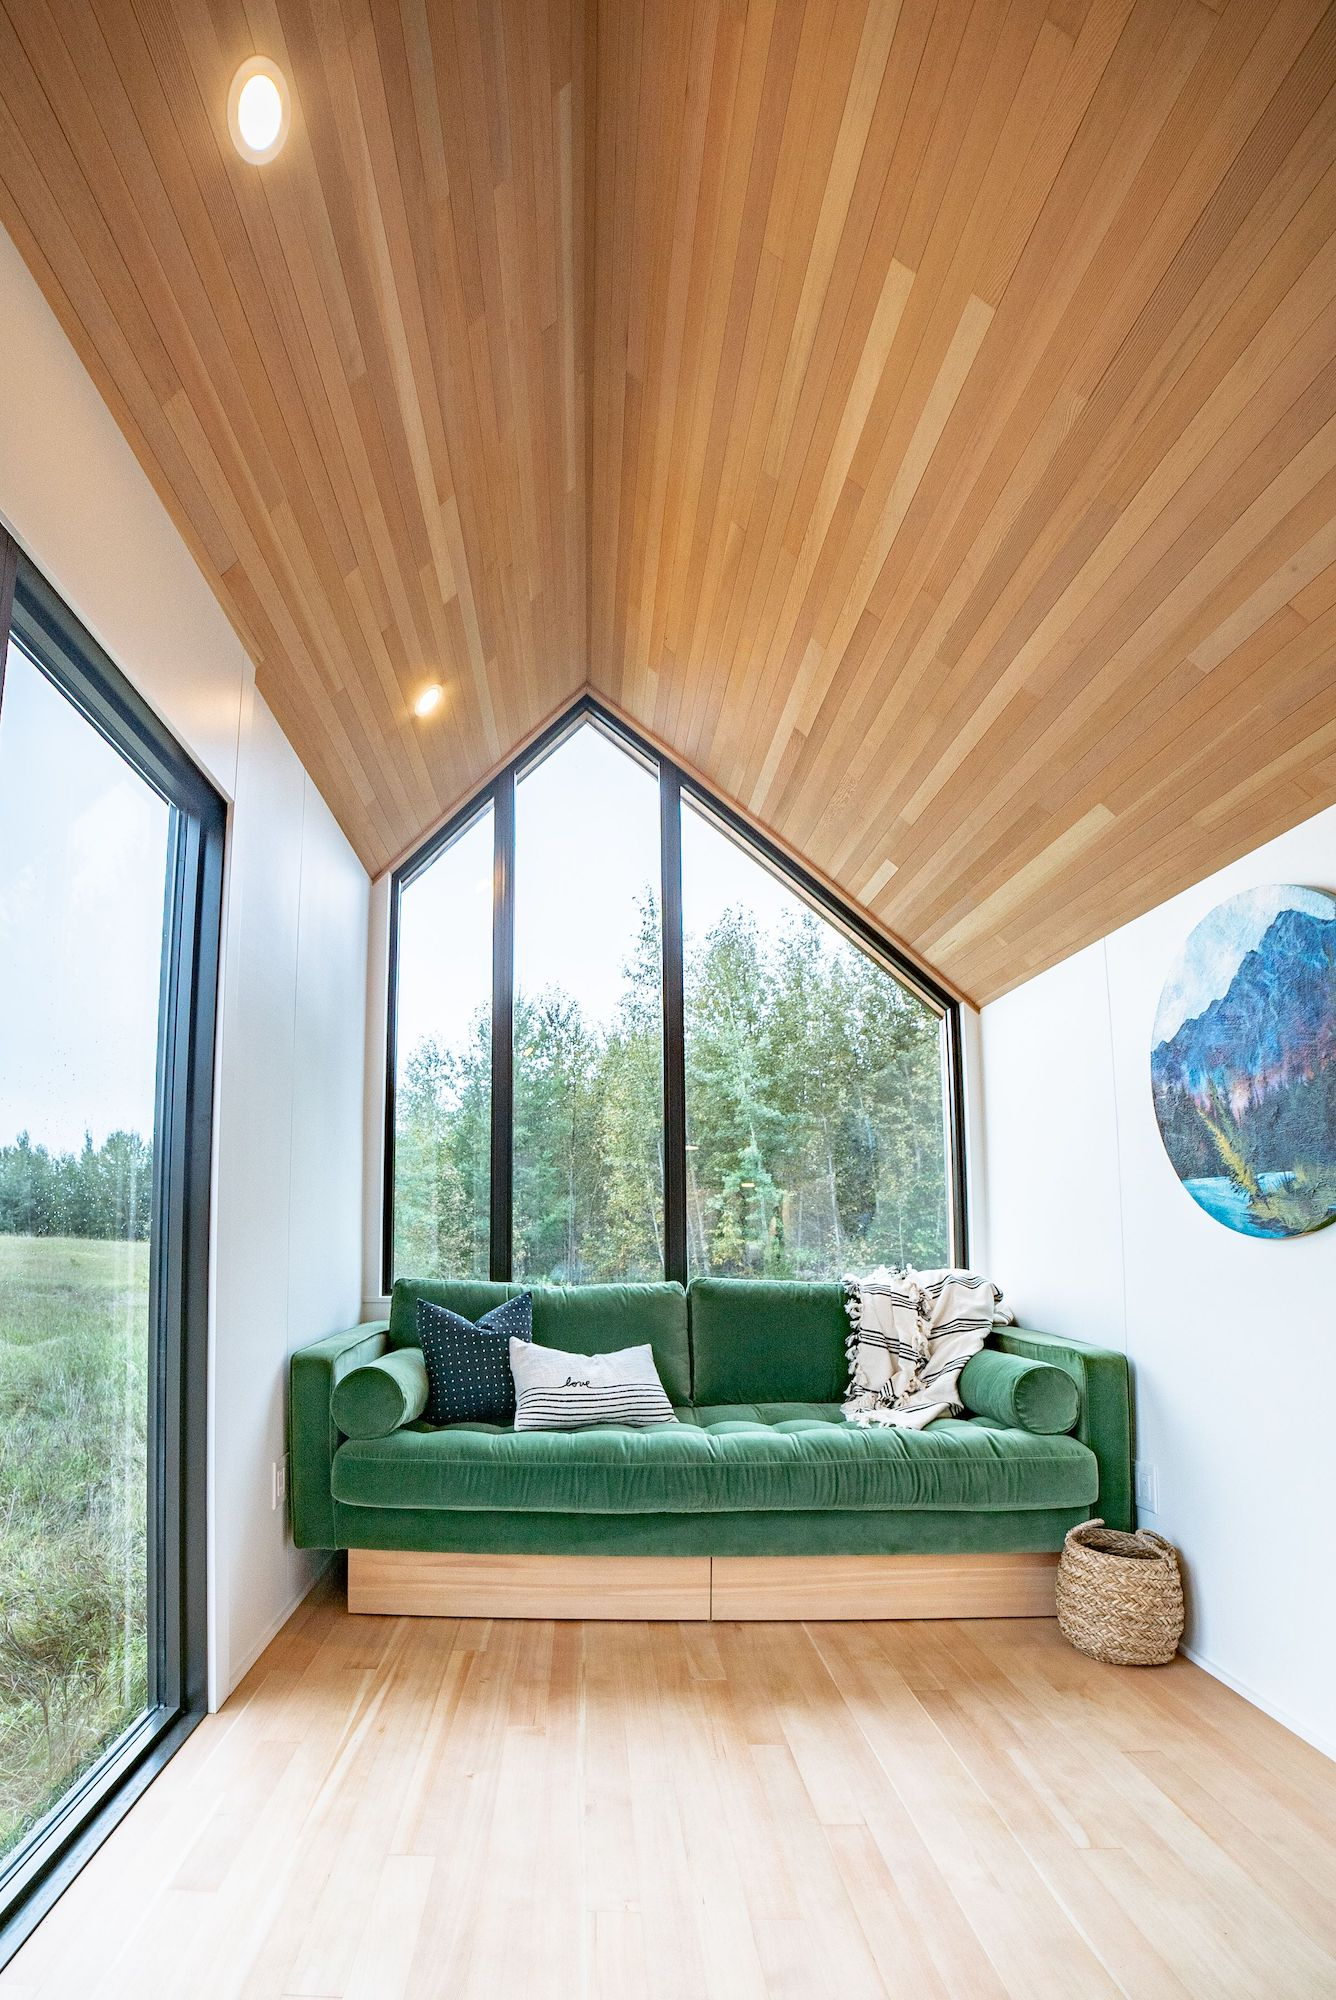 Couch and window in tiny house